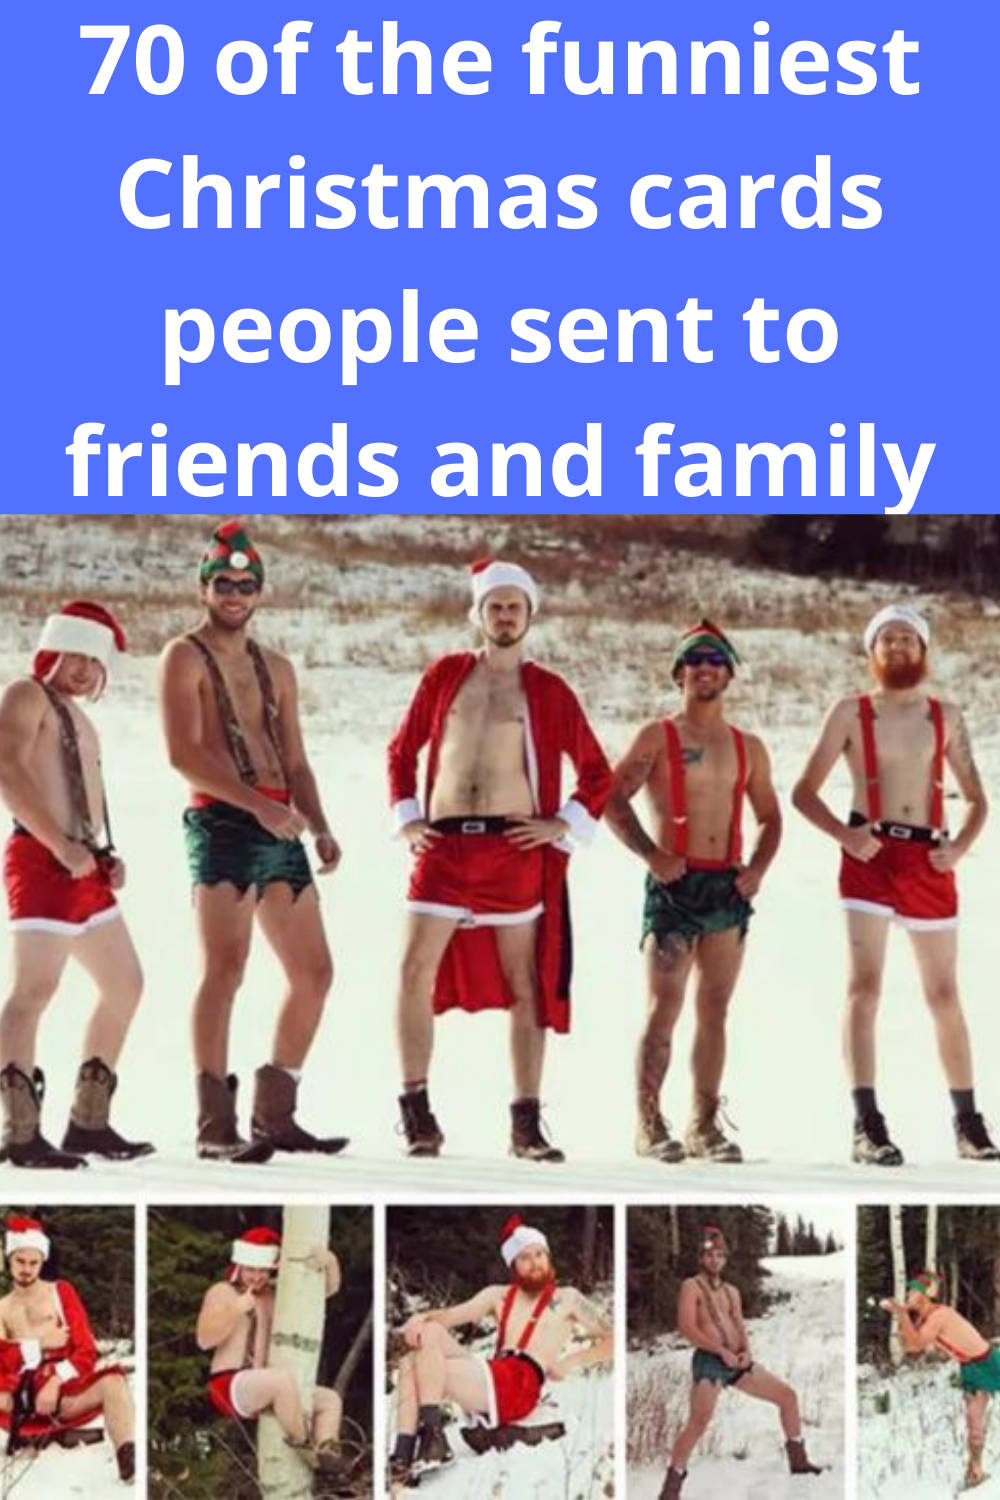 70 of the funniest Christmas cards people sent to